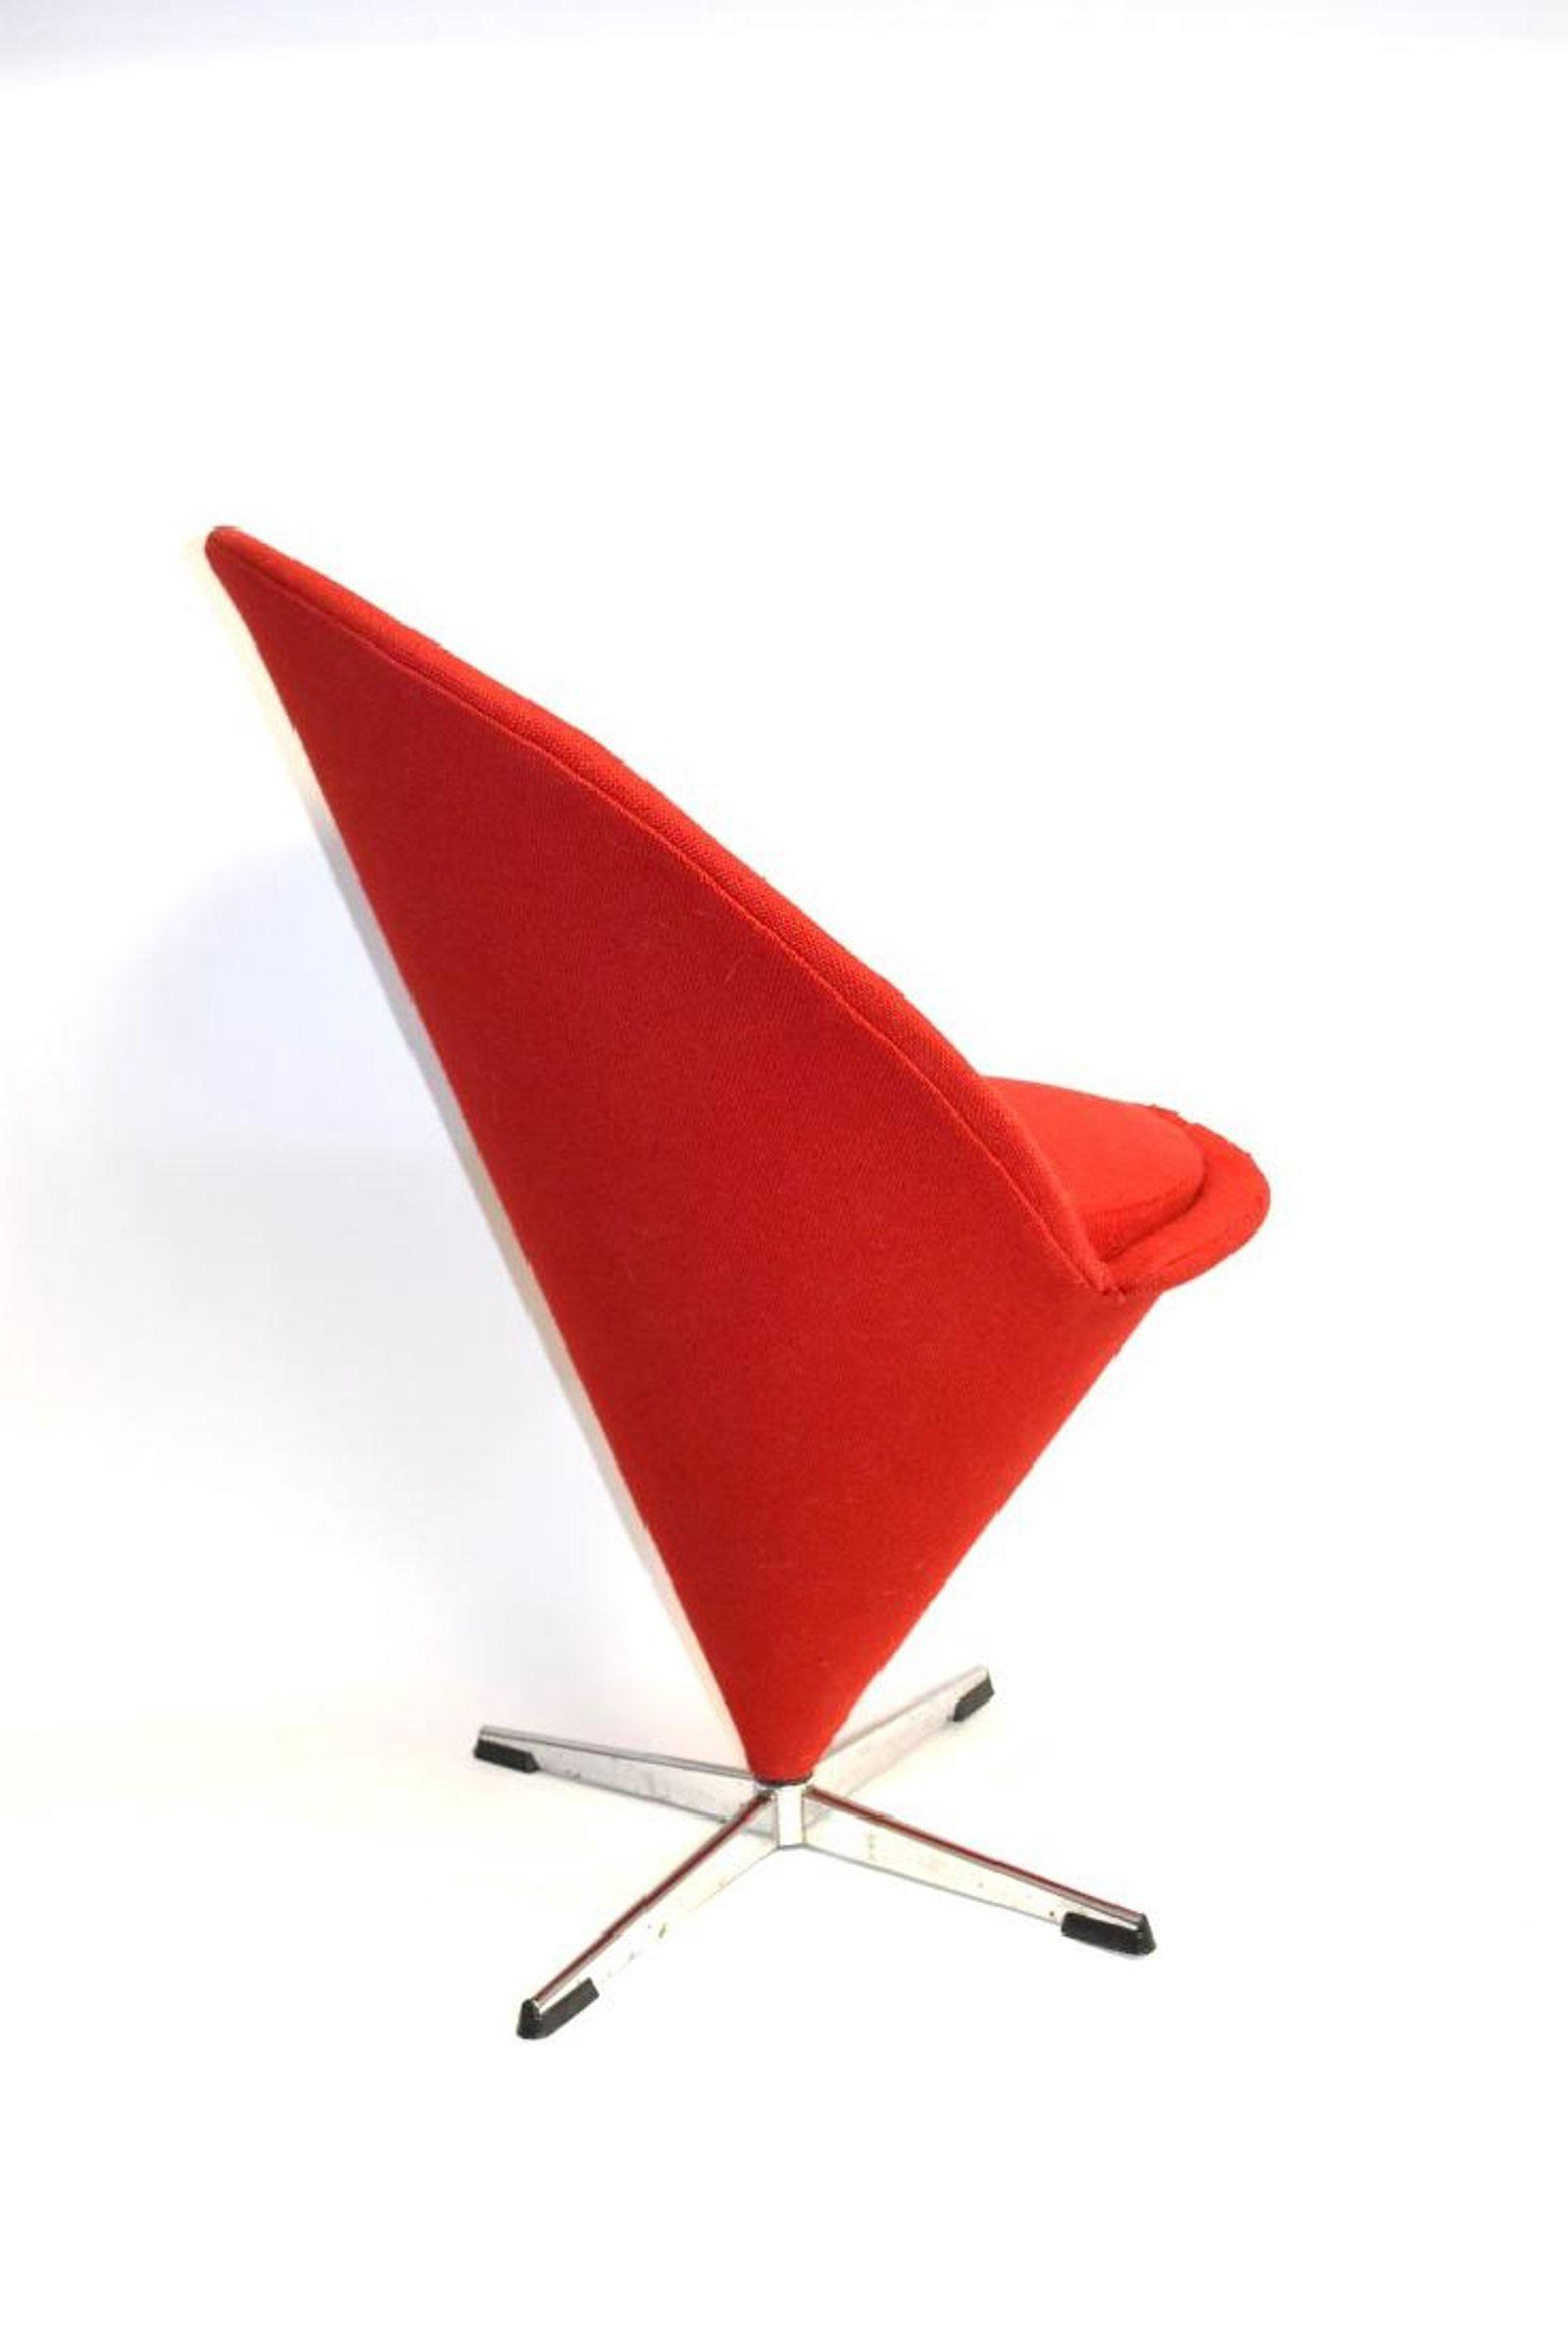 1958 Red Verner Panton Cone Chair   Image 3 Of 5